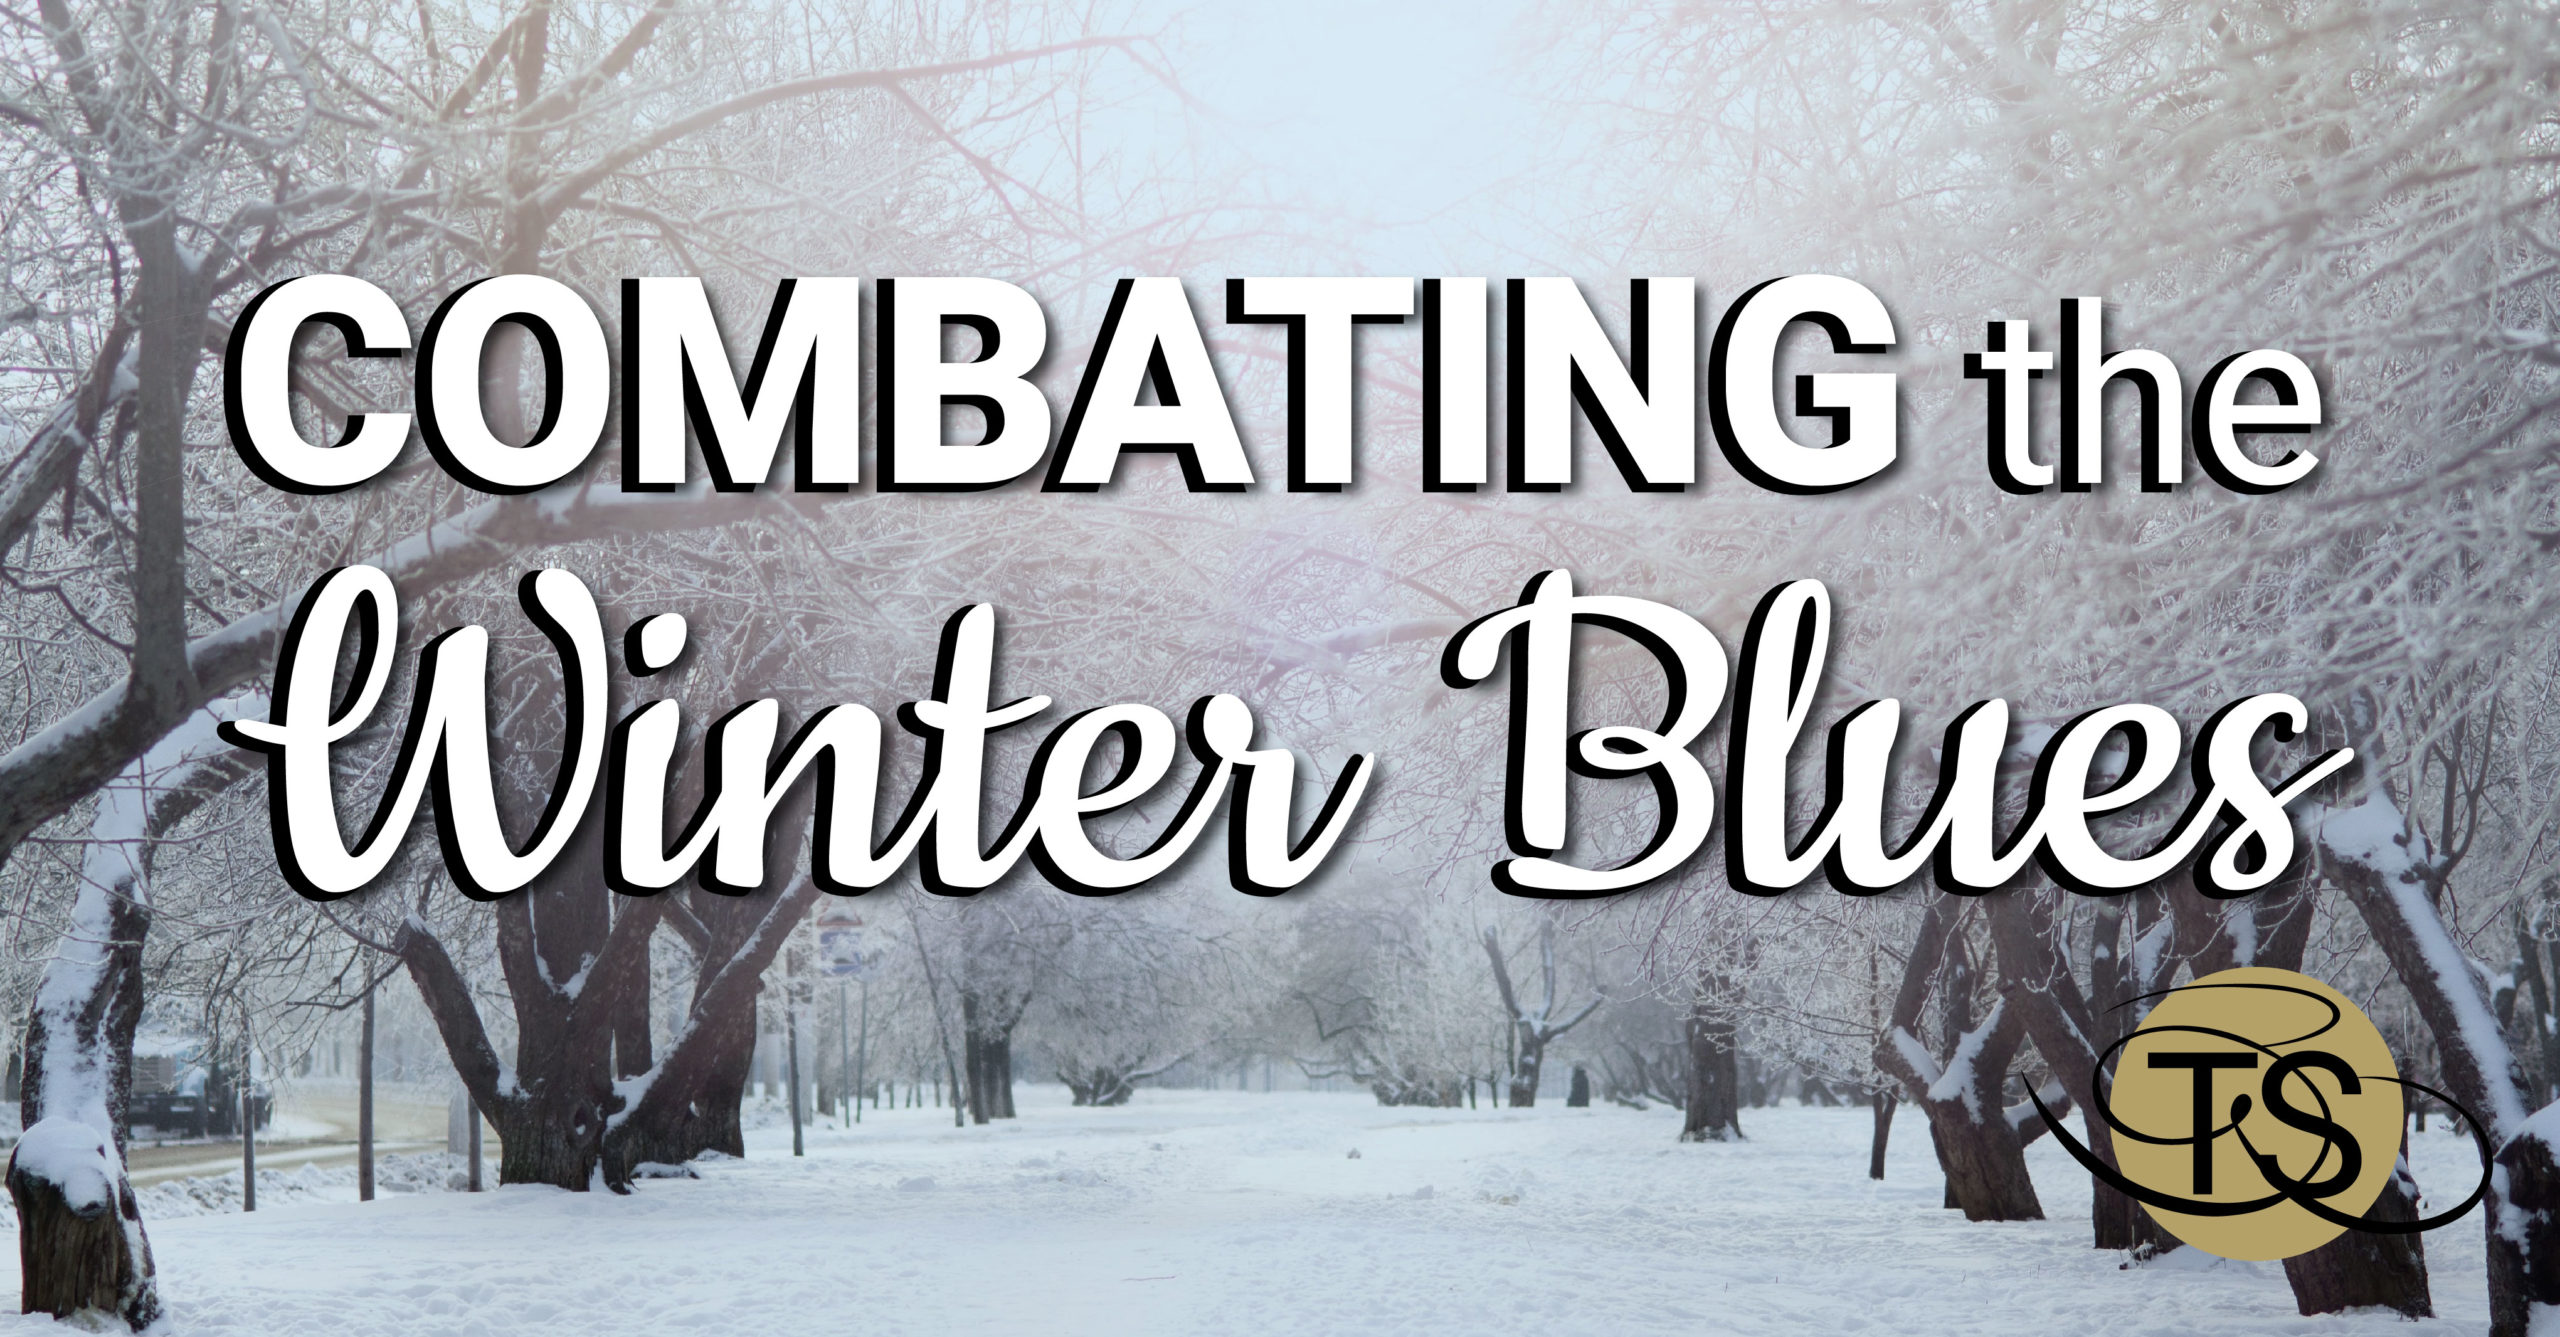 Combating The Winter Blues